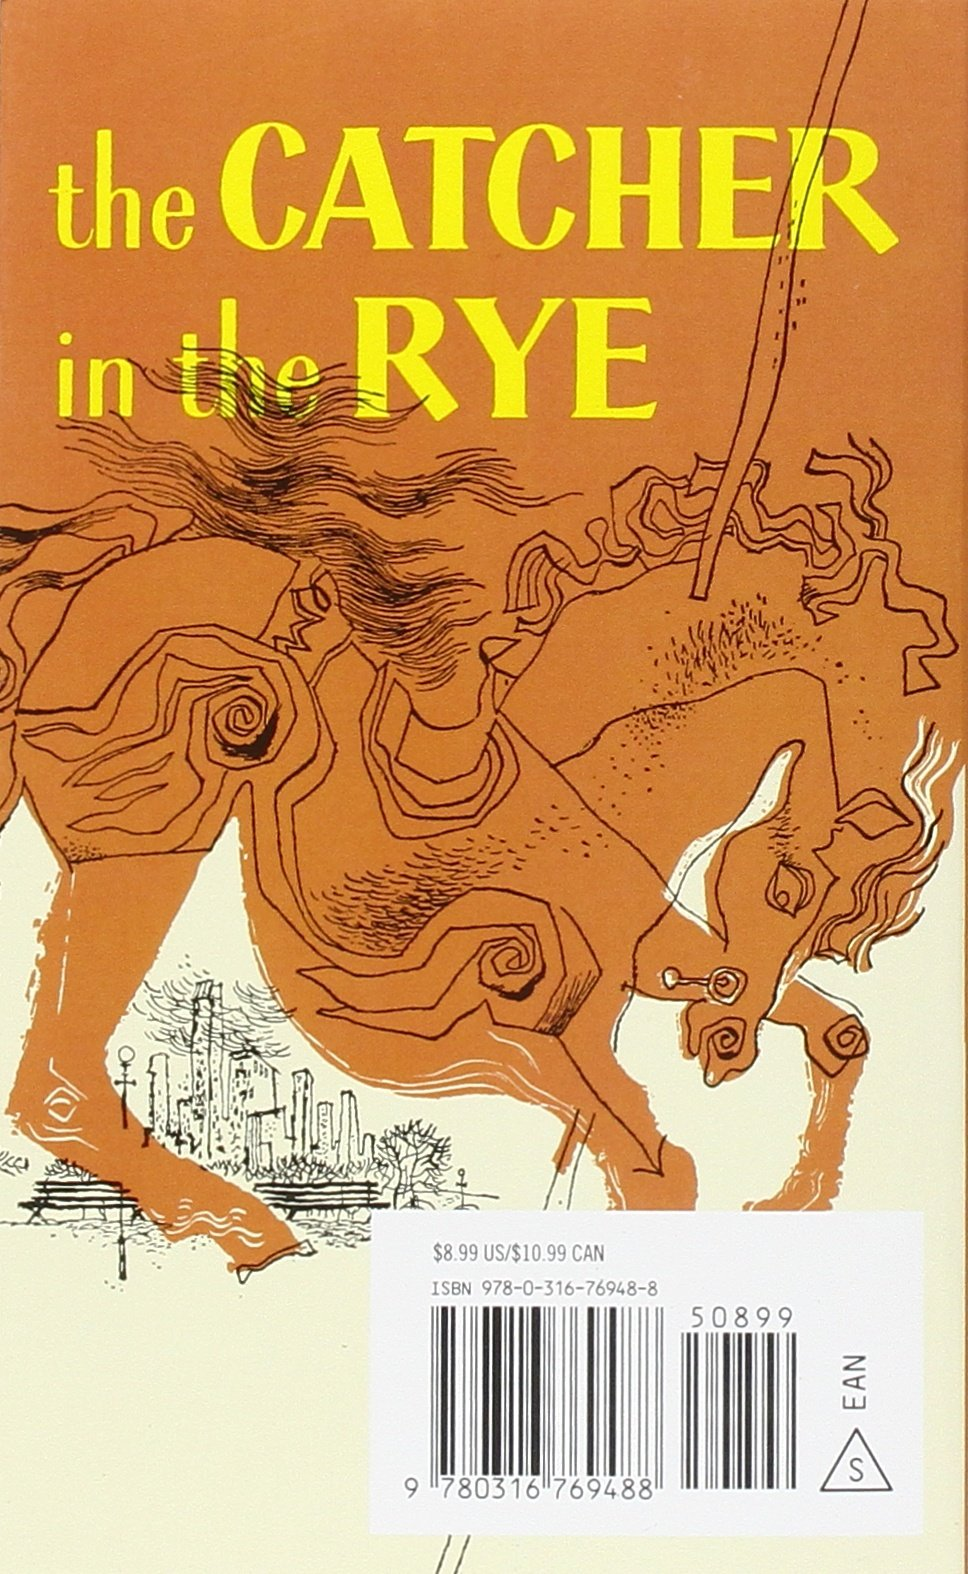 essays on the catcher in the rye loneliness essays loneliness  com the catcher in the rye j d salinger com the catcher in the rye 9780316769488 j d